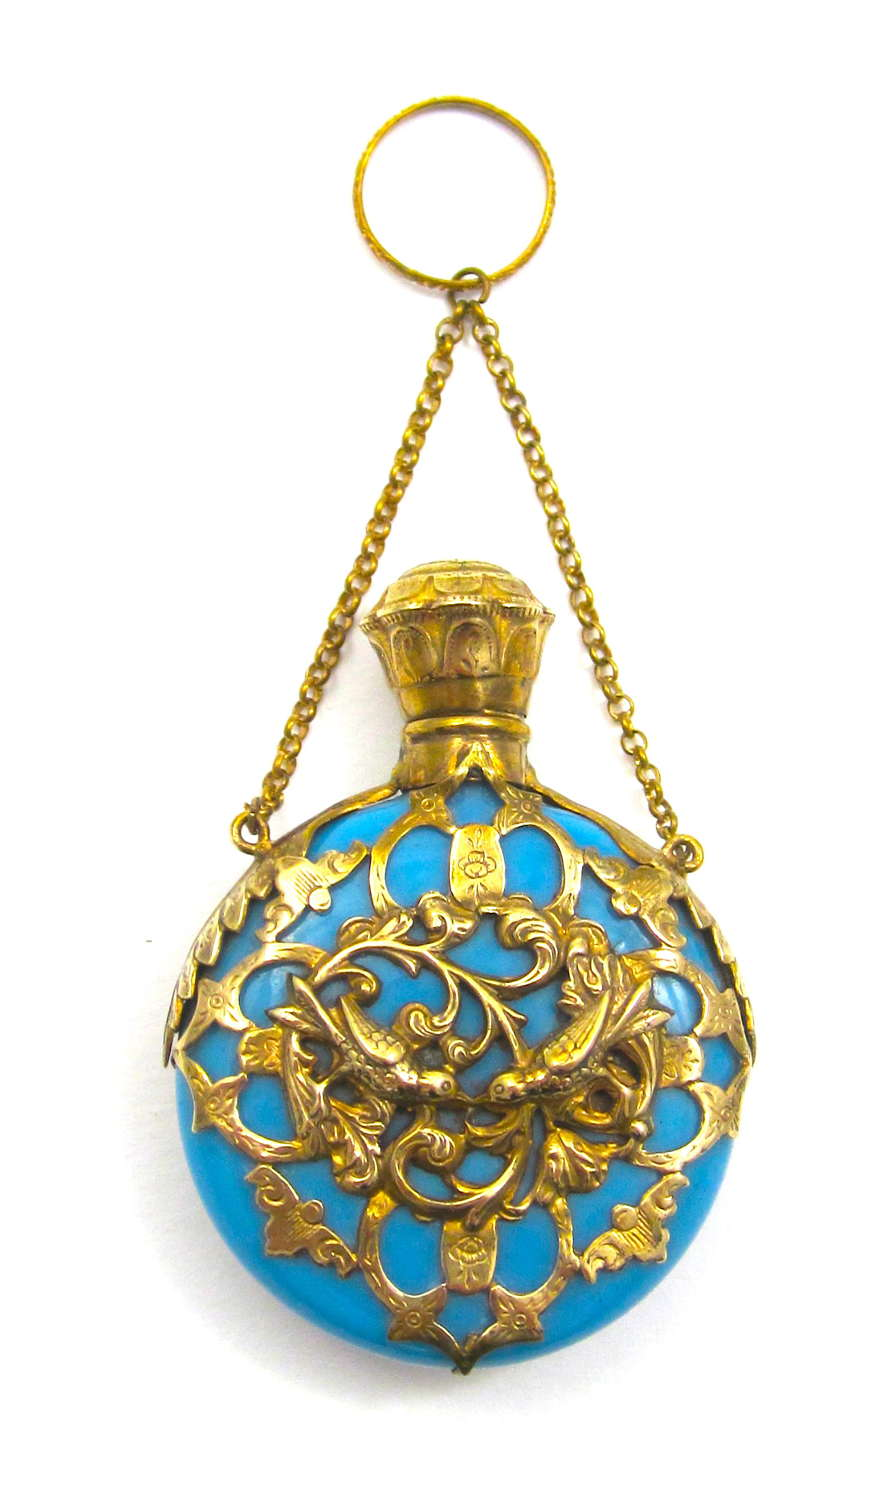 A Superb Antique Blue Opaline Glass Scent Bottle with Two Love Birds